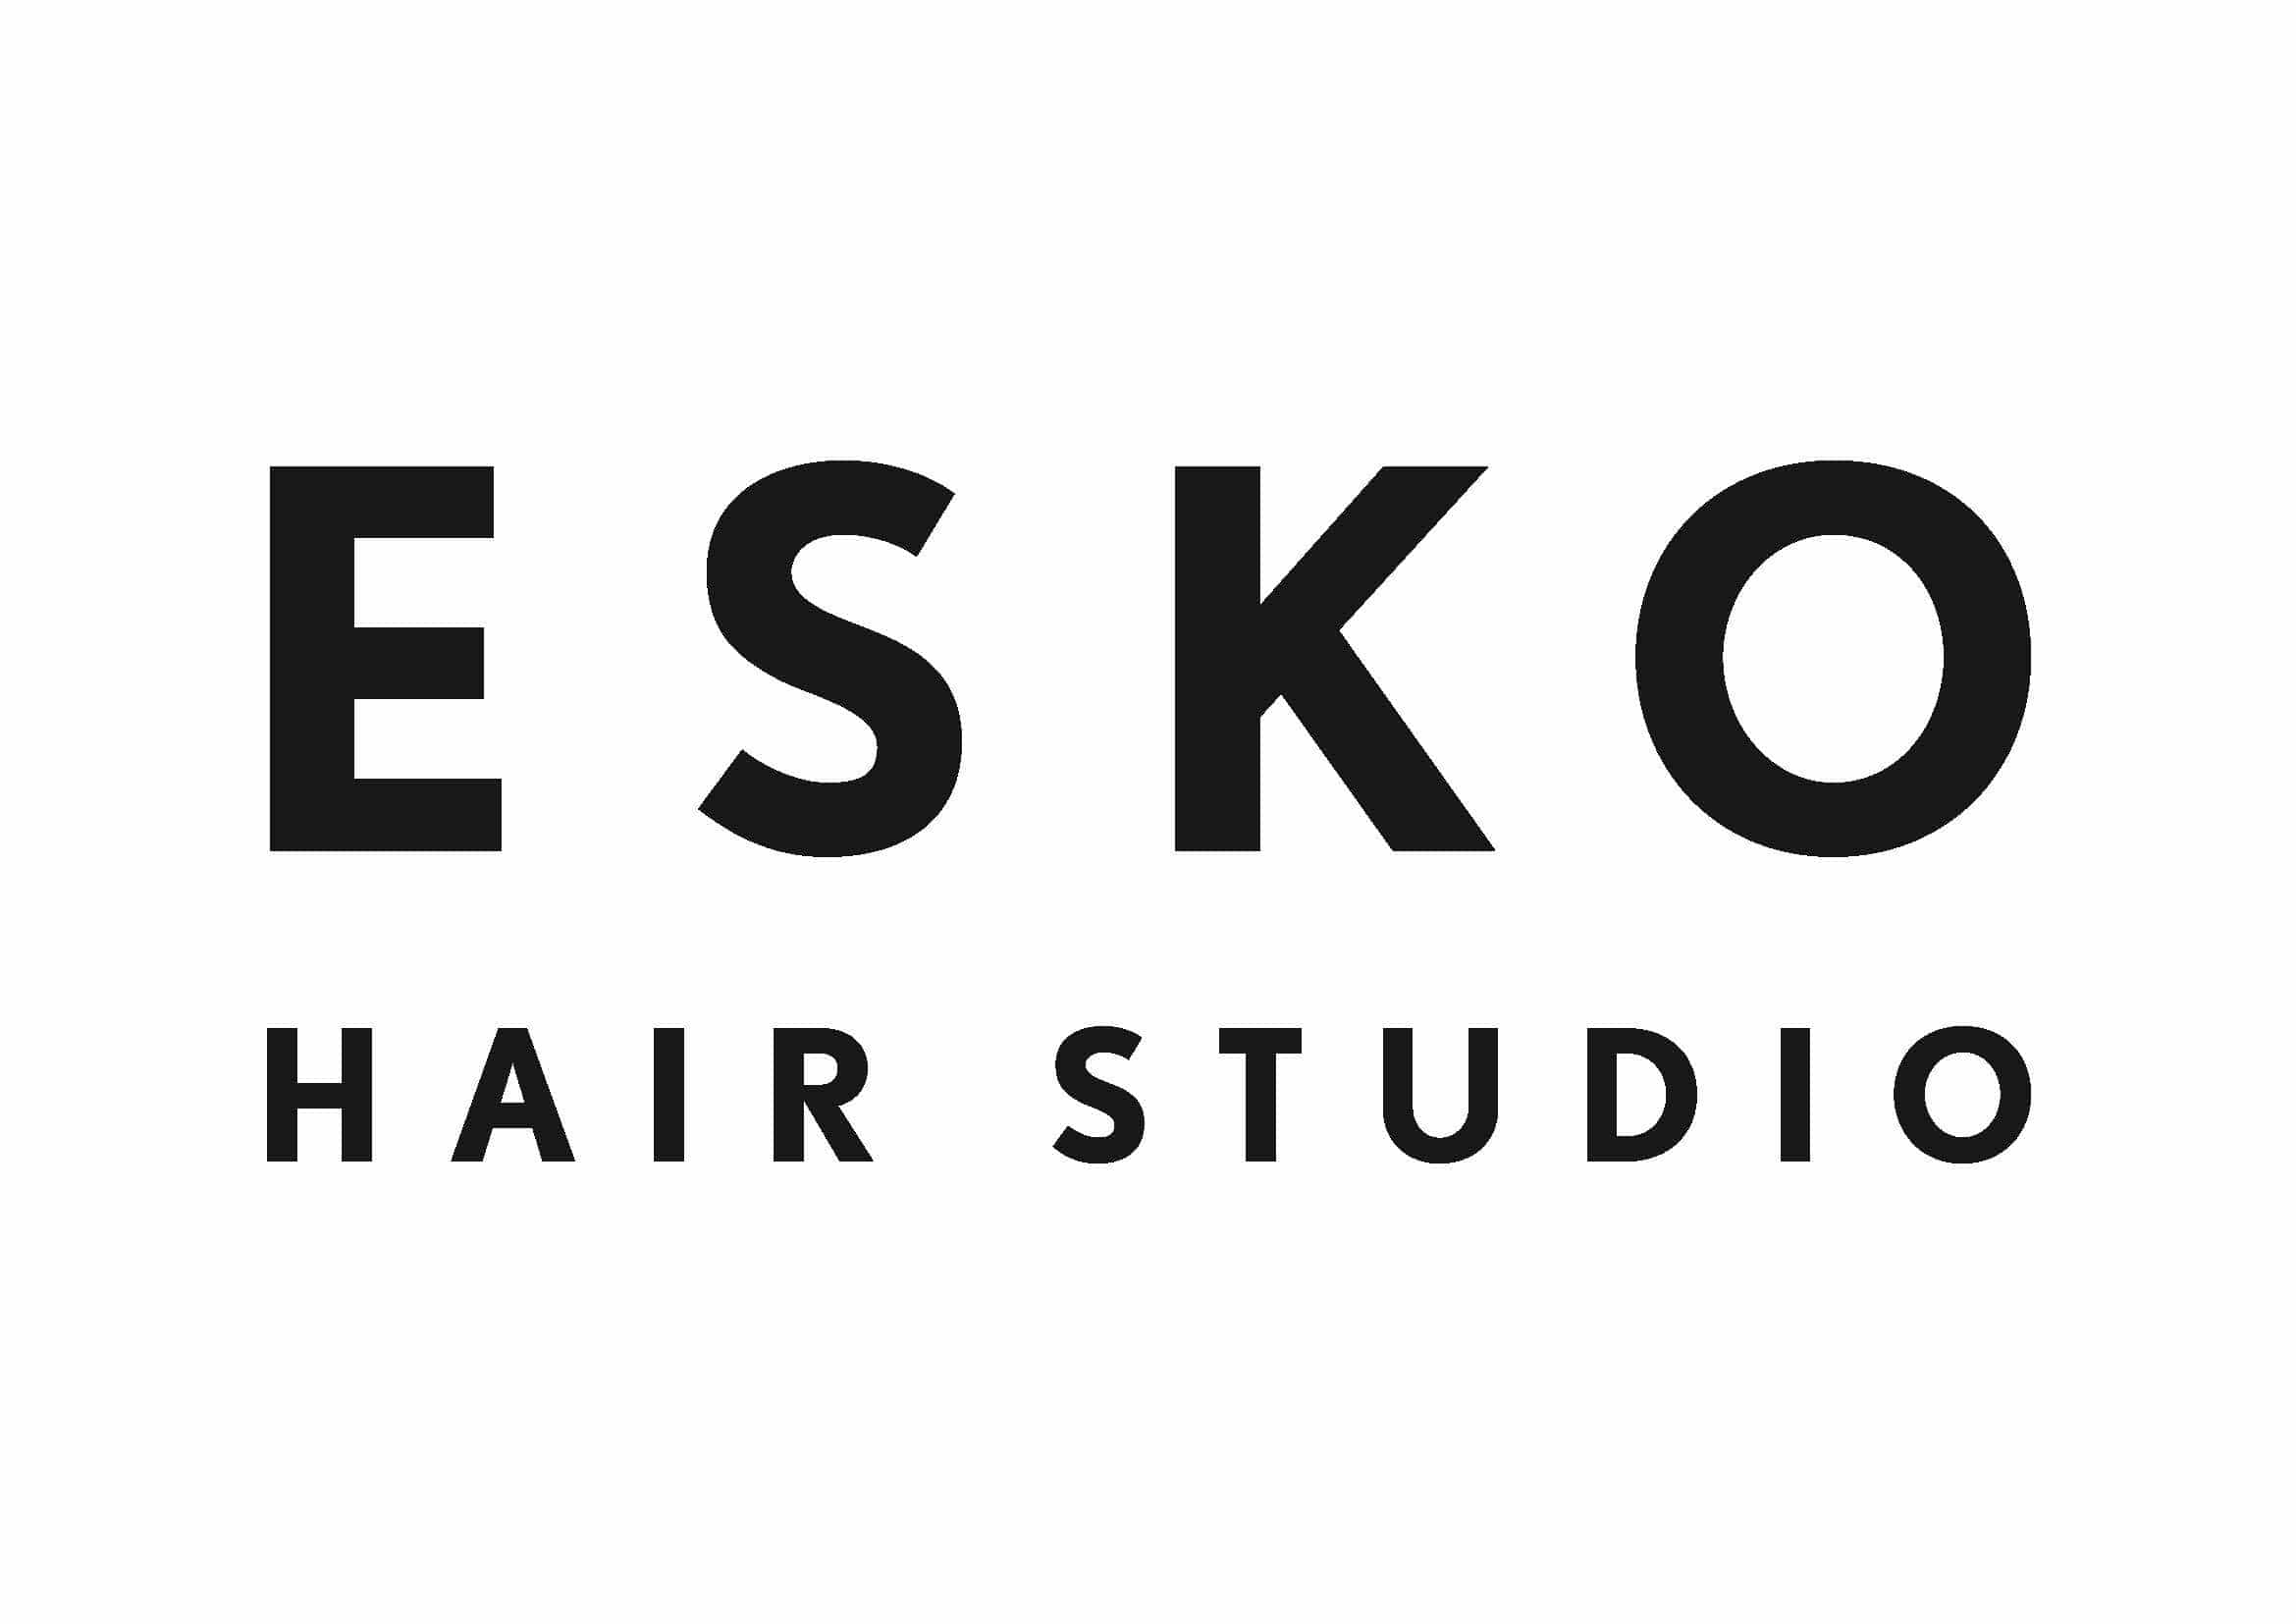 Esko Hairstudio